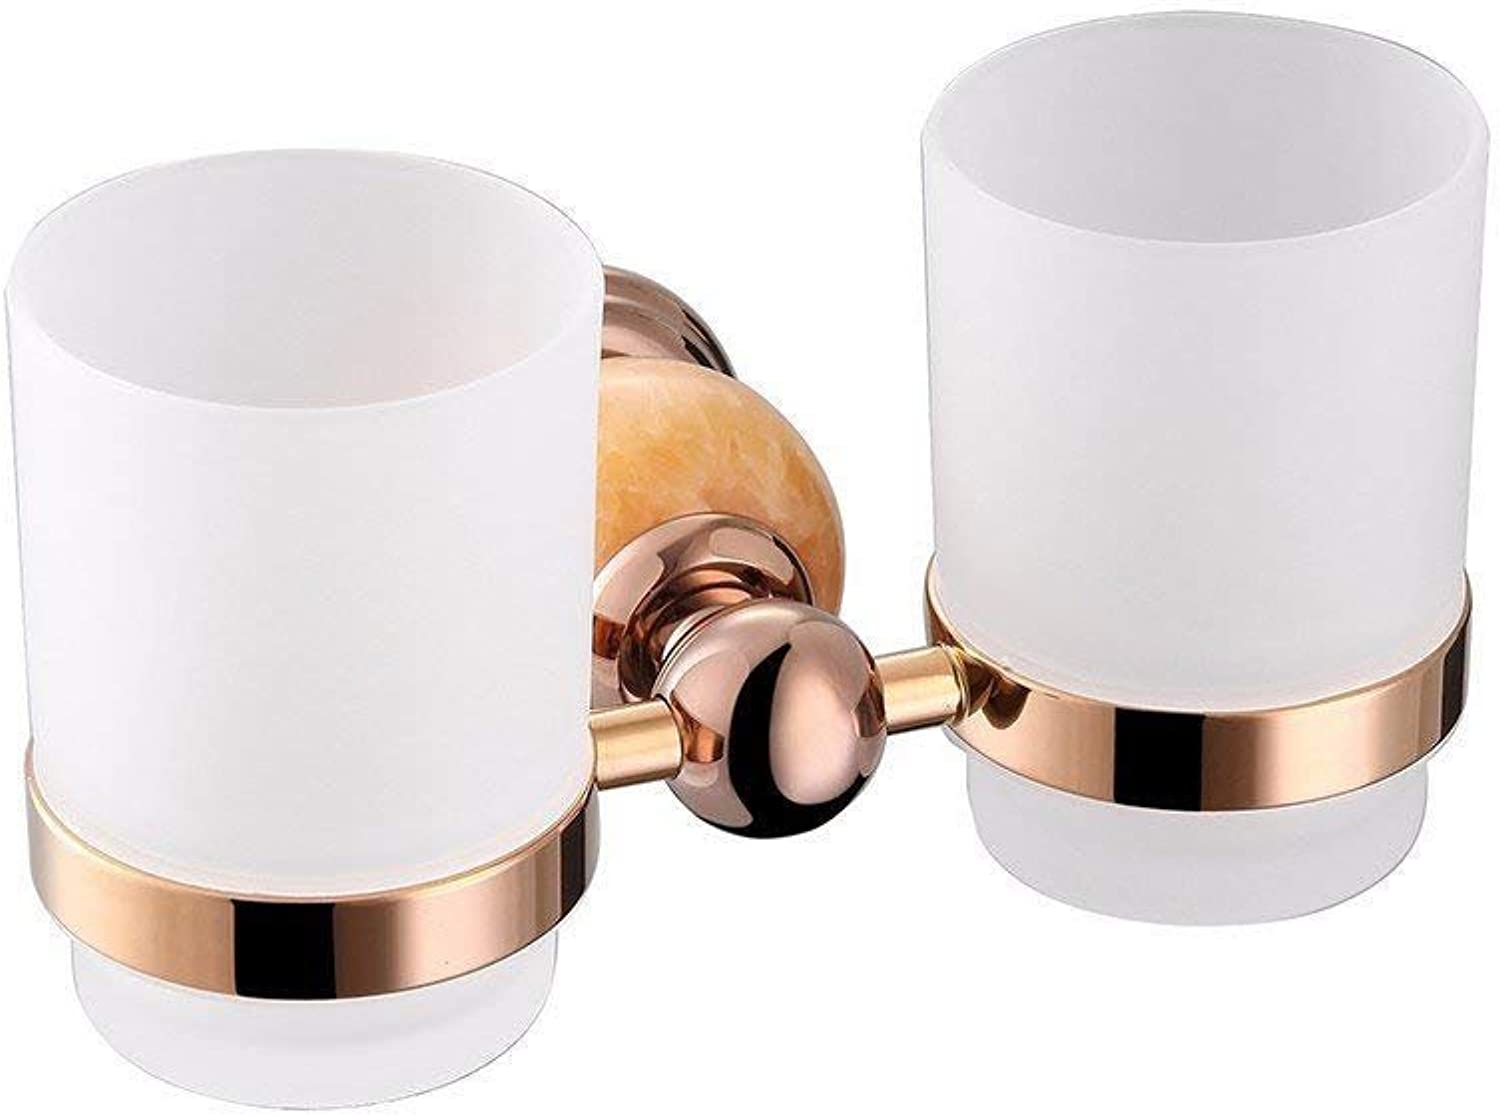 Jade Copper gold + Dry-Towels Toilet Pink Door-Fabric Brush Holder and Then Double Pole Double Simple kit of Accessories Cut of Bathroom, Double Cup